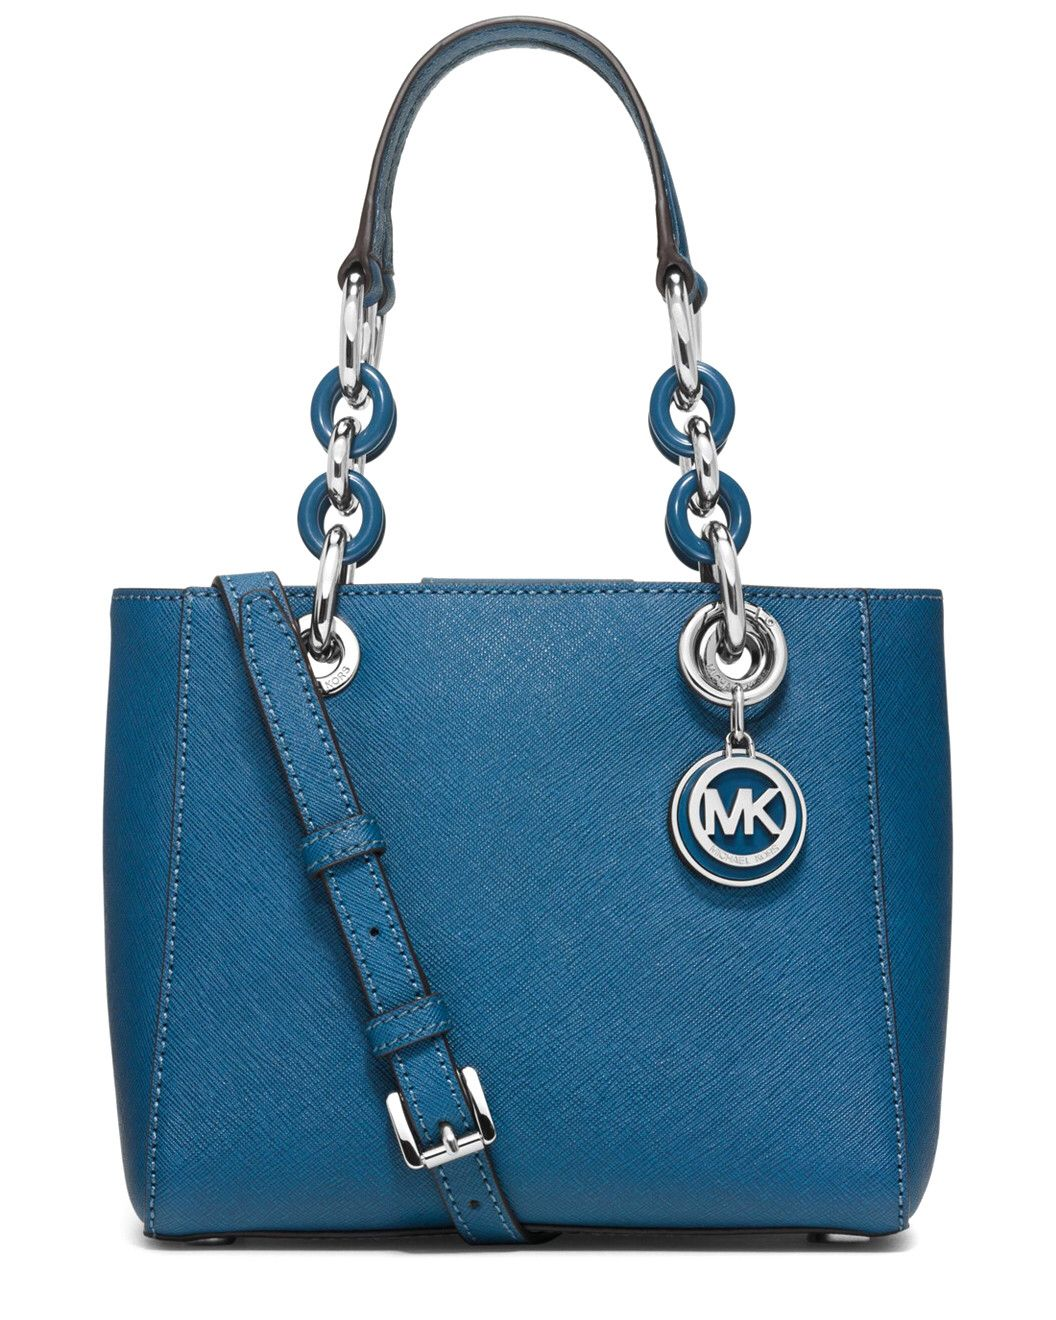 You need to see this Michael Kors Cynthia Extra-Small Leather Satchel on Rue La La.  Get in and shop (quickly!): http://www.ruelala.com/boutique/product/99376/29445099?inv=monicafedri&aid=6191